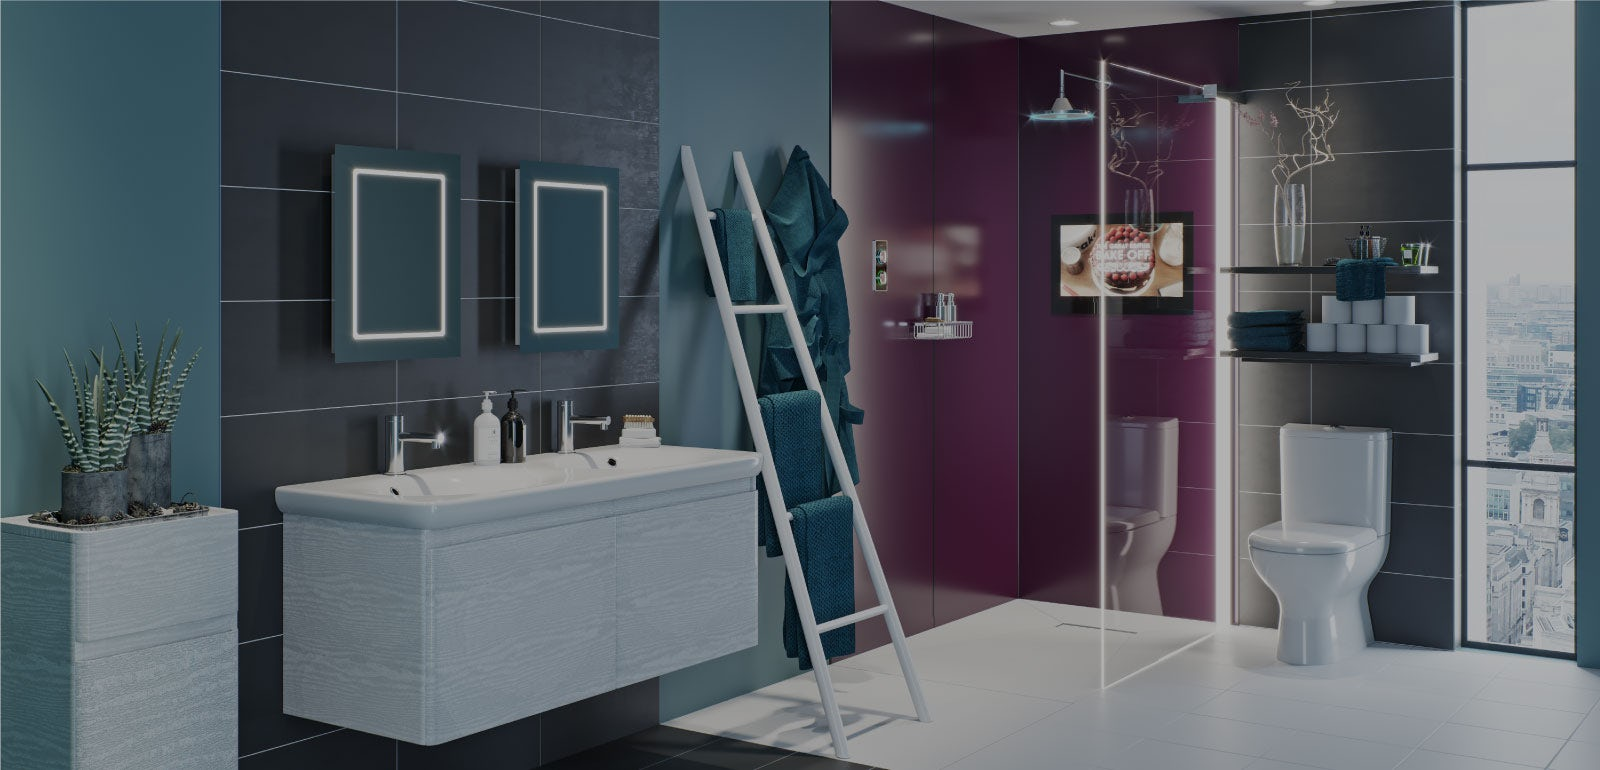 Bathroom Ideas: Be Bold with Power-Up